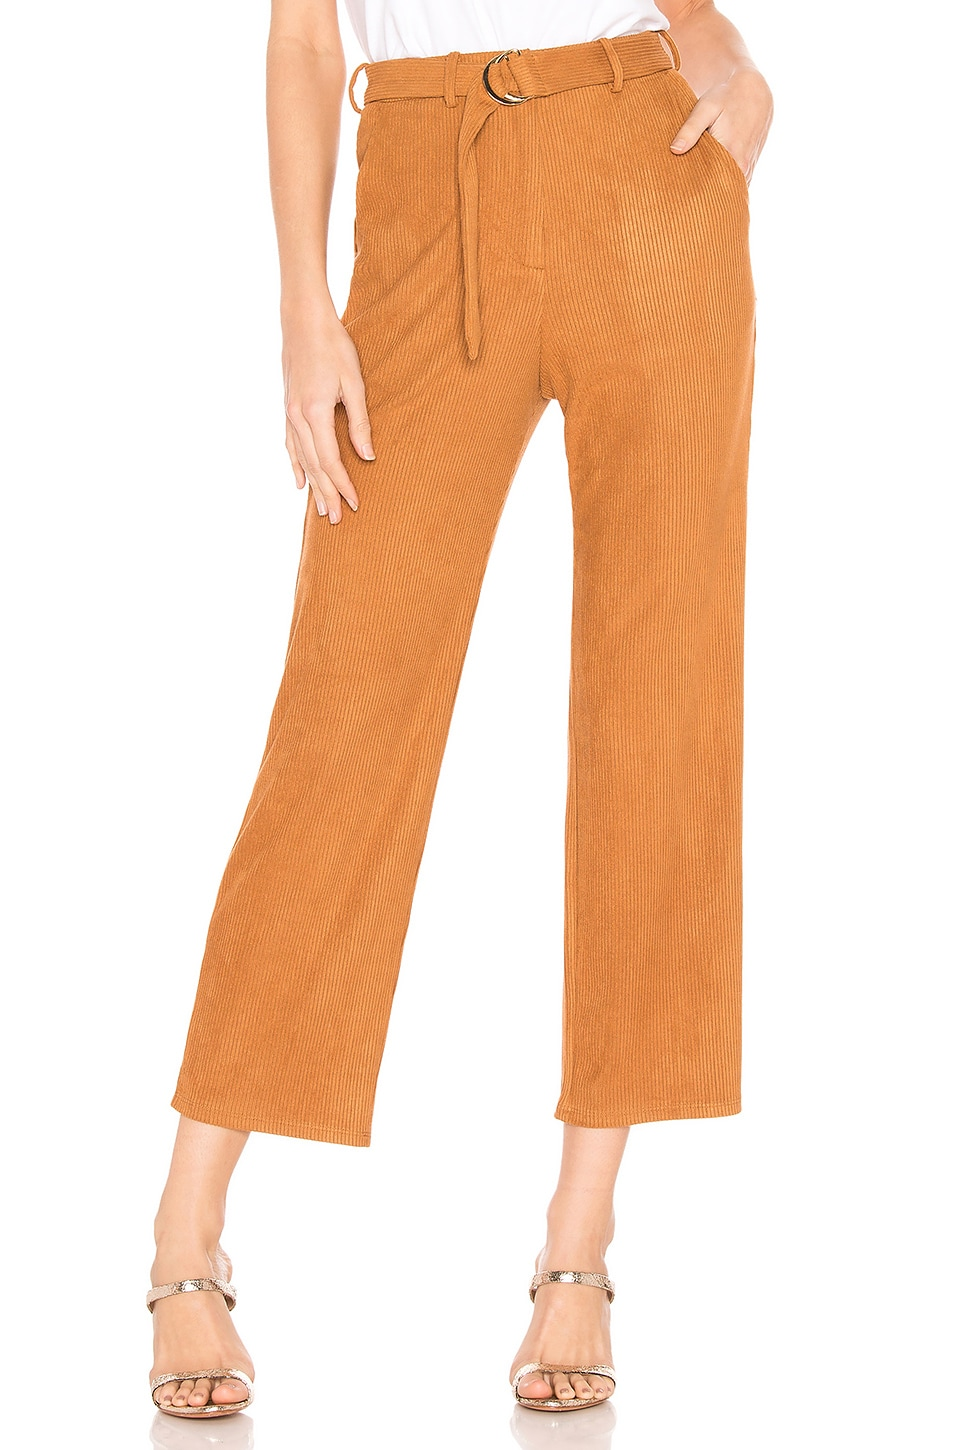 House of Harlow 1960 X REVOLVE Gavin Pant in Toffee